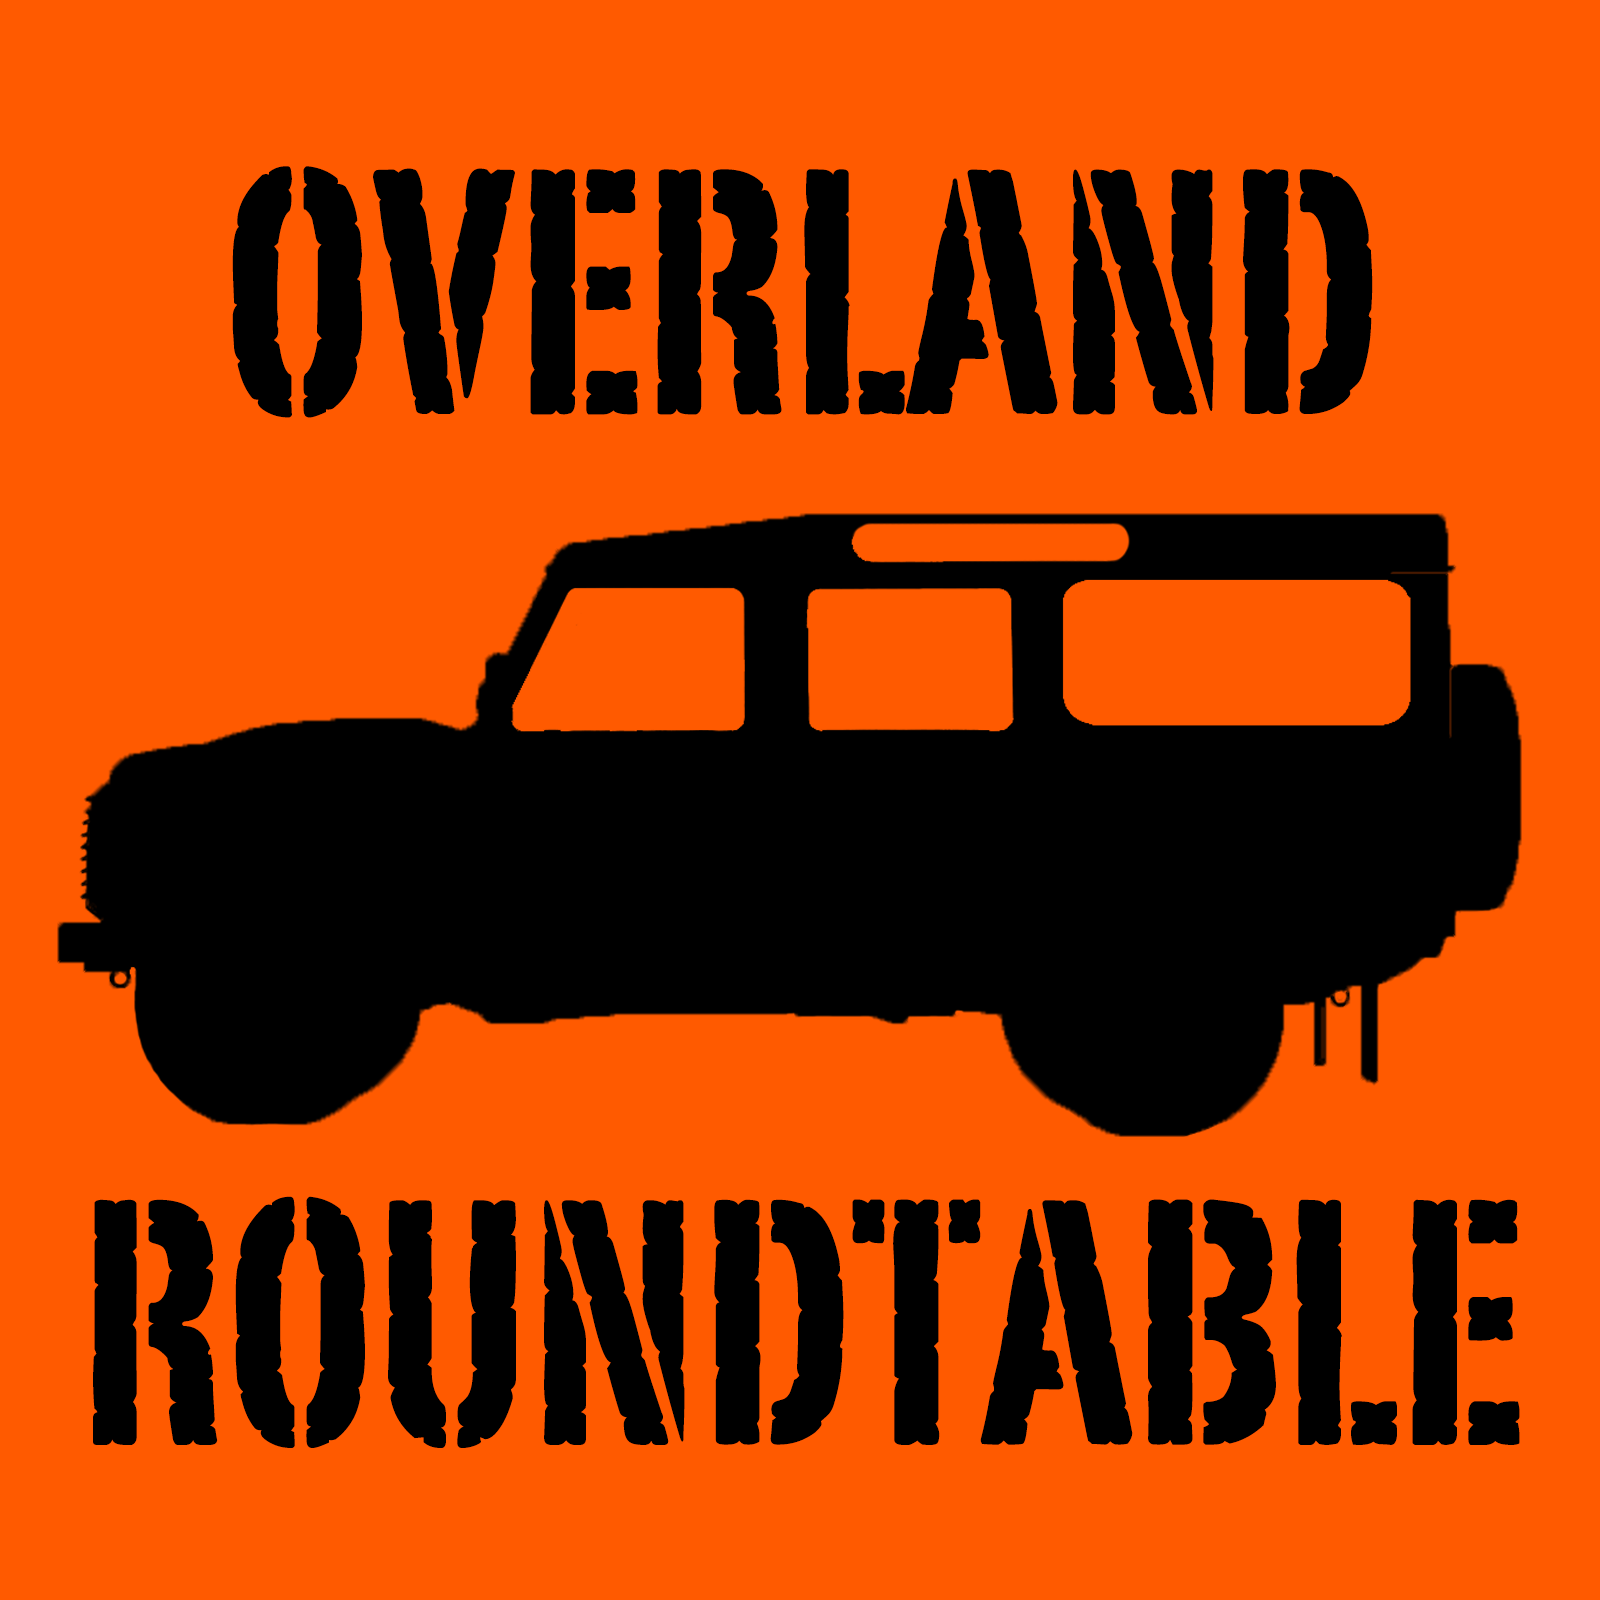 Overland Roundtable